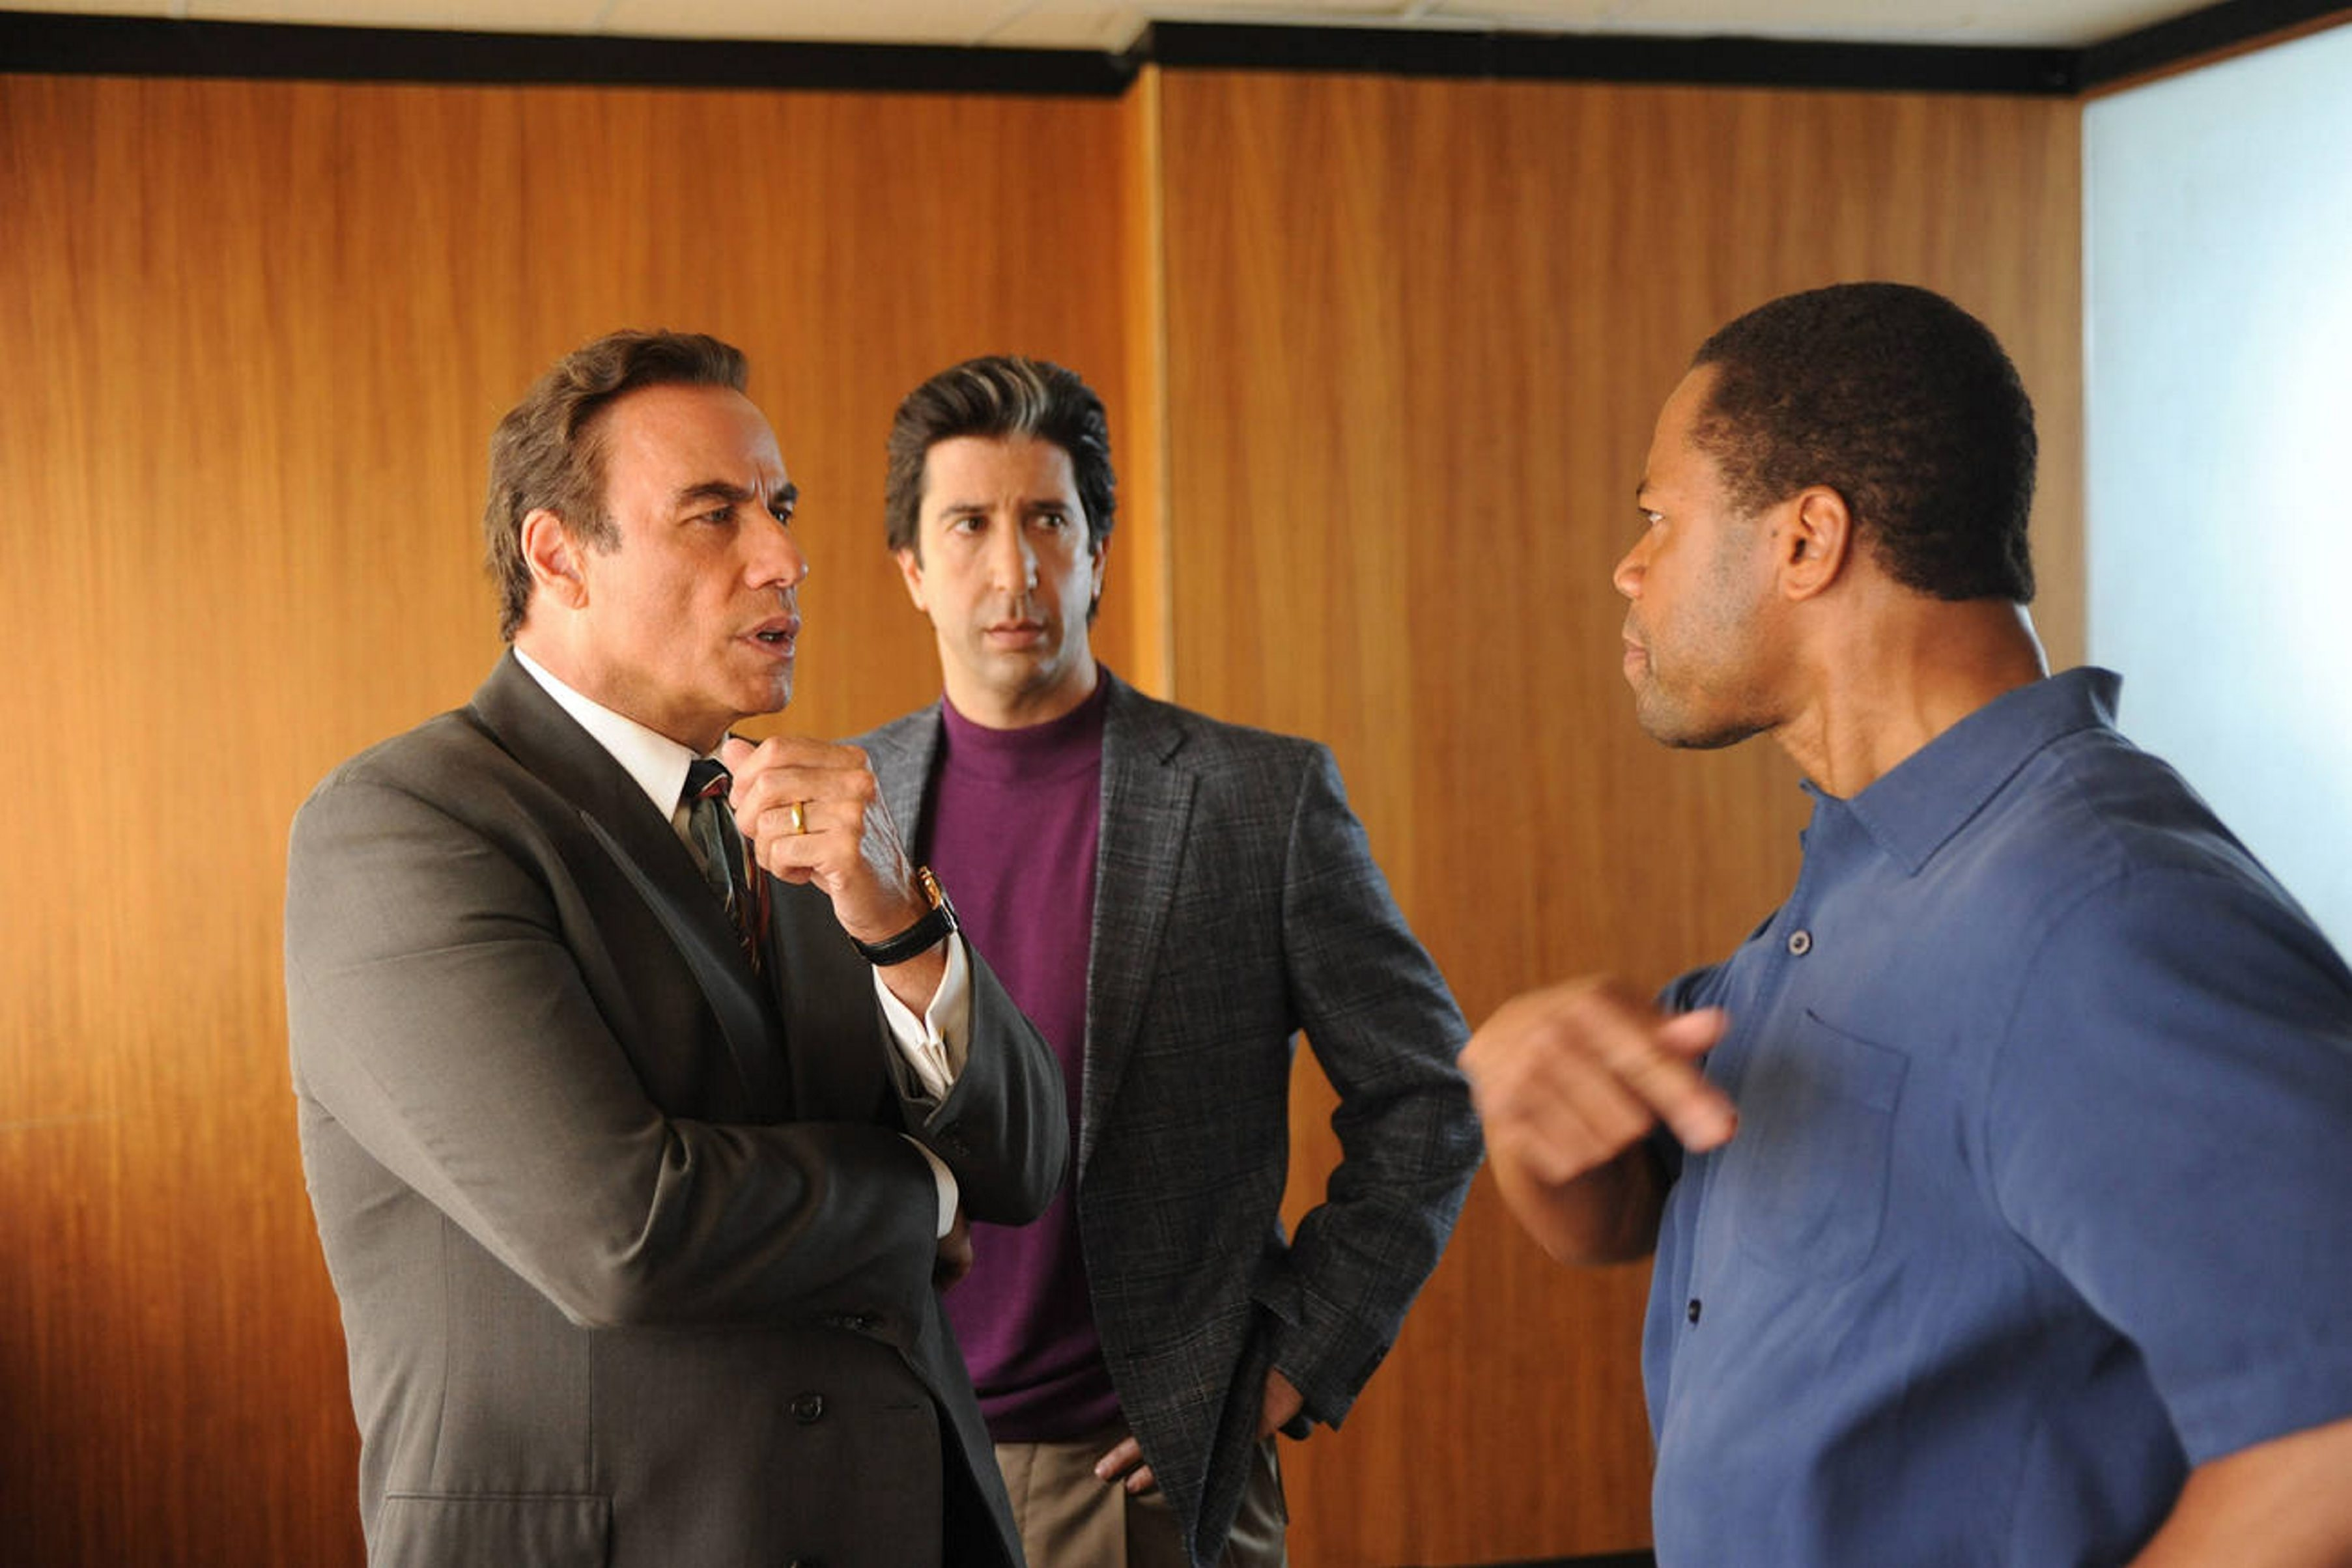 """The People v. O.J. Simpson: American Crime Story,"" starring, from left, John Travolta, David Schwimmer and Cuba Gooding Jr., is nomiated for Program of the Year by the Television Critics Association."